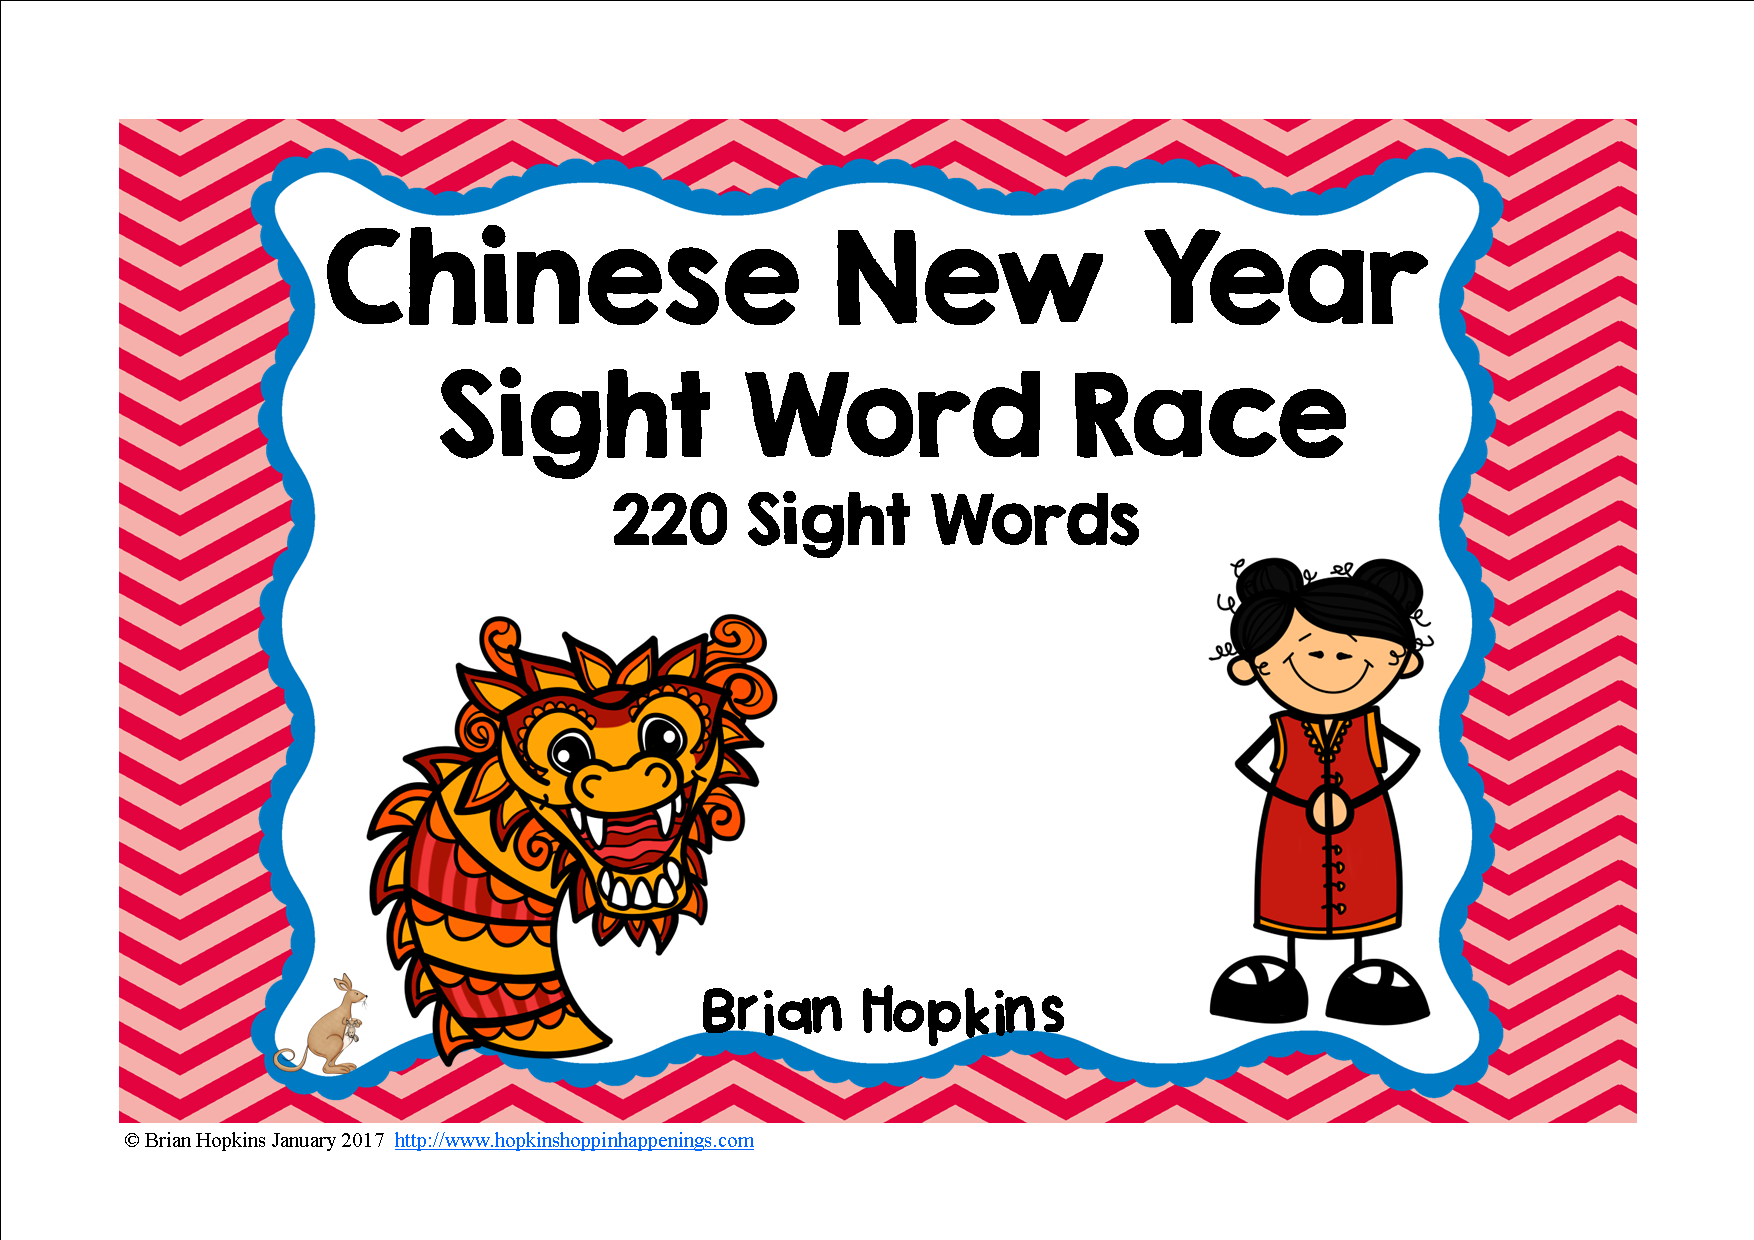 Chinese New Year Sight Word Race